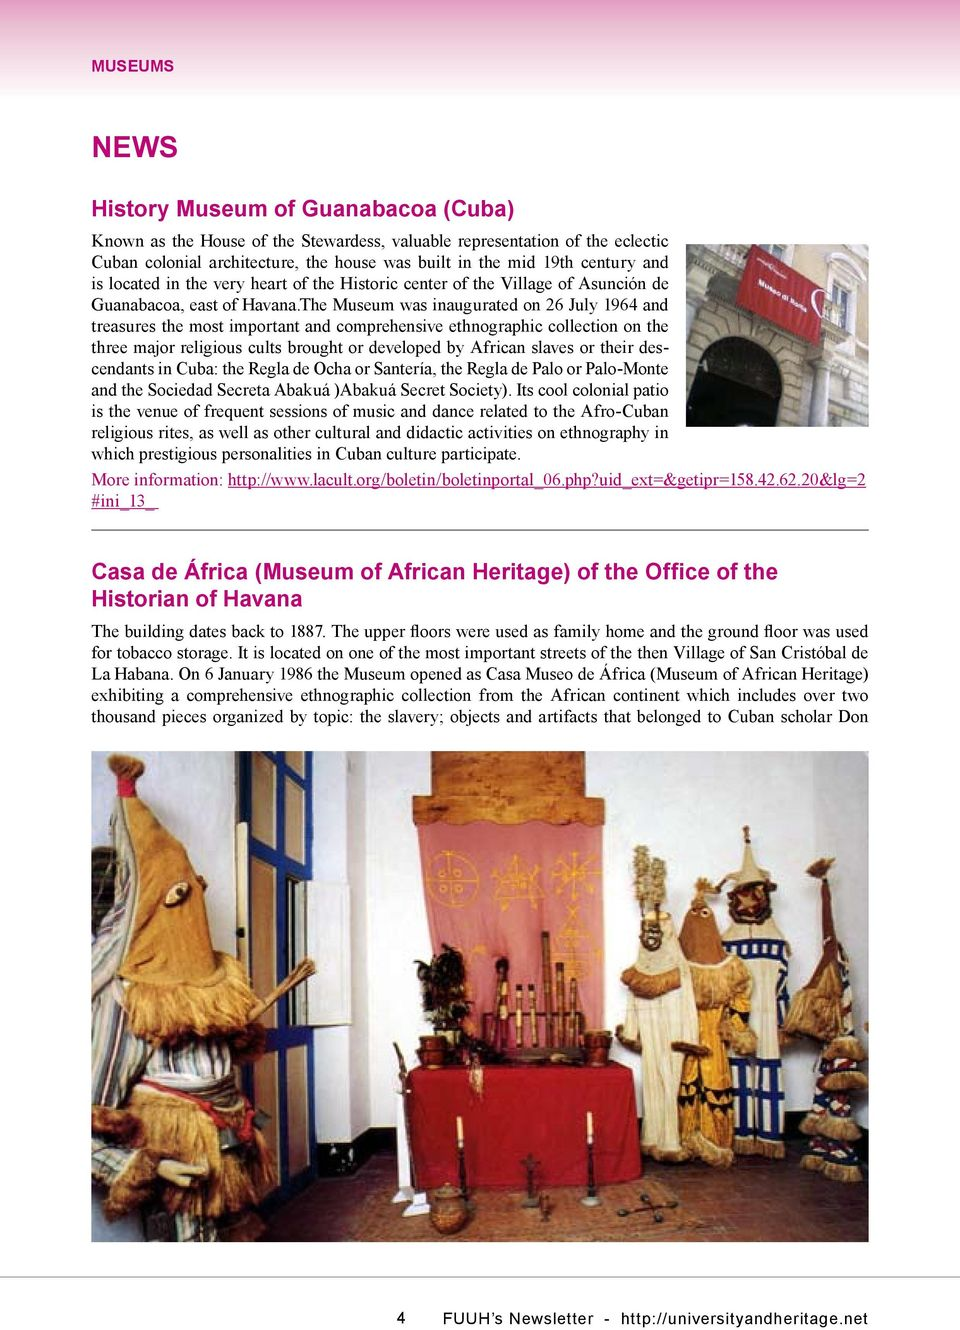 The Museum was inaugurated on 26 July 1964 and treasures the most important and comprehensive ethnographic collection on the three major religious cults brought or developed by African slaves or